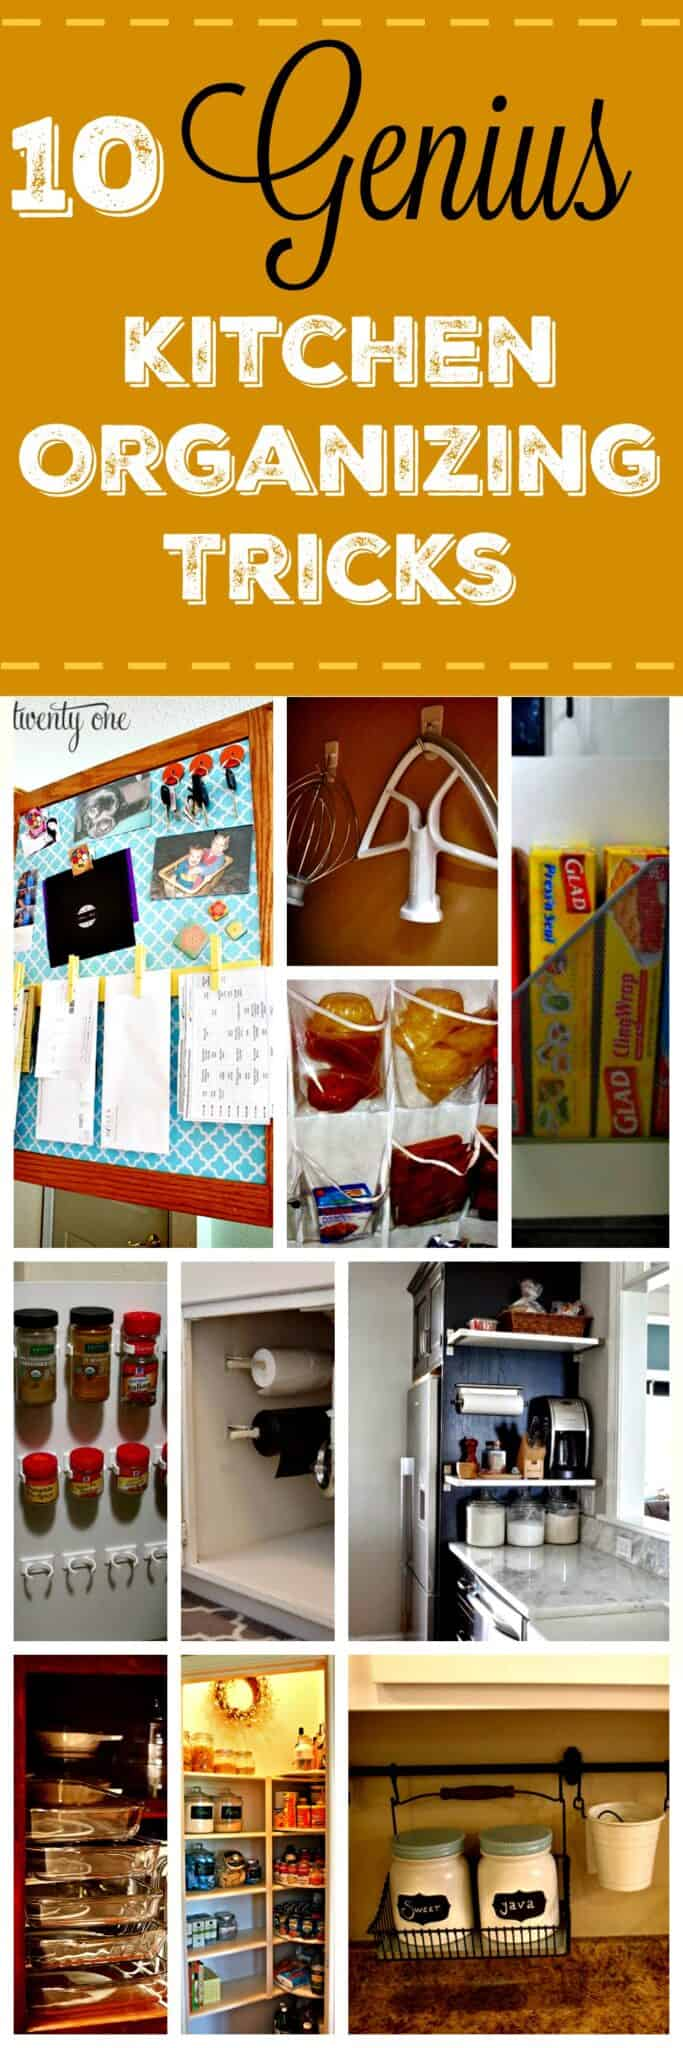 organizing kitchen tips kitchen organization tips 10 genius tricks 1271